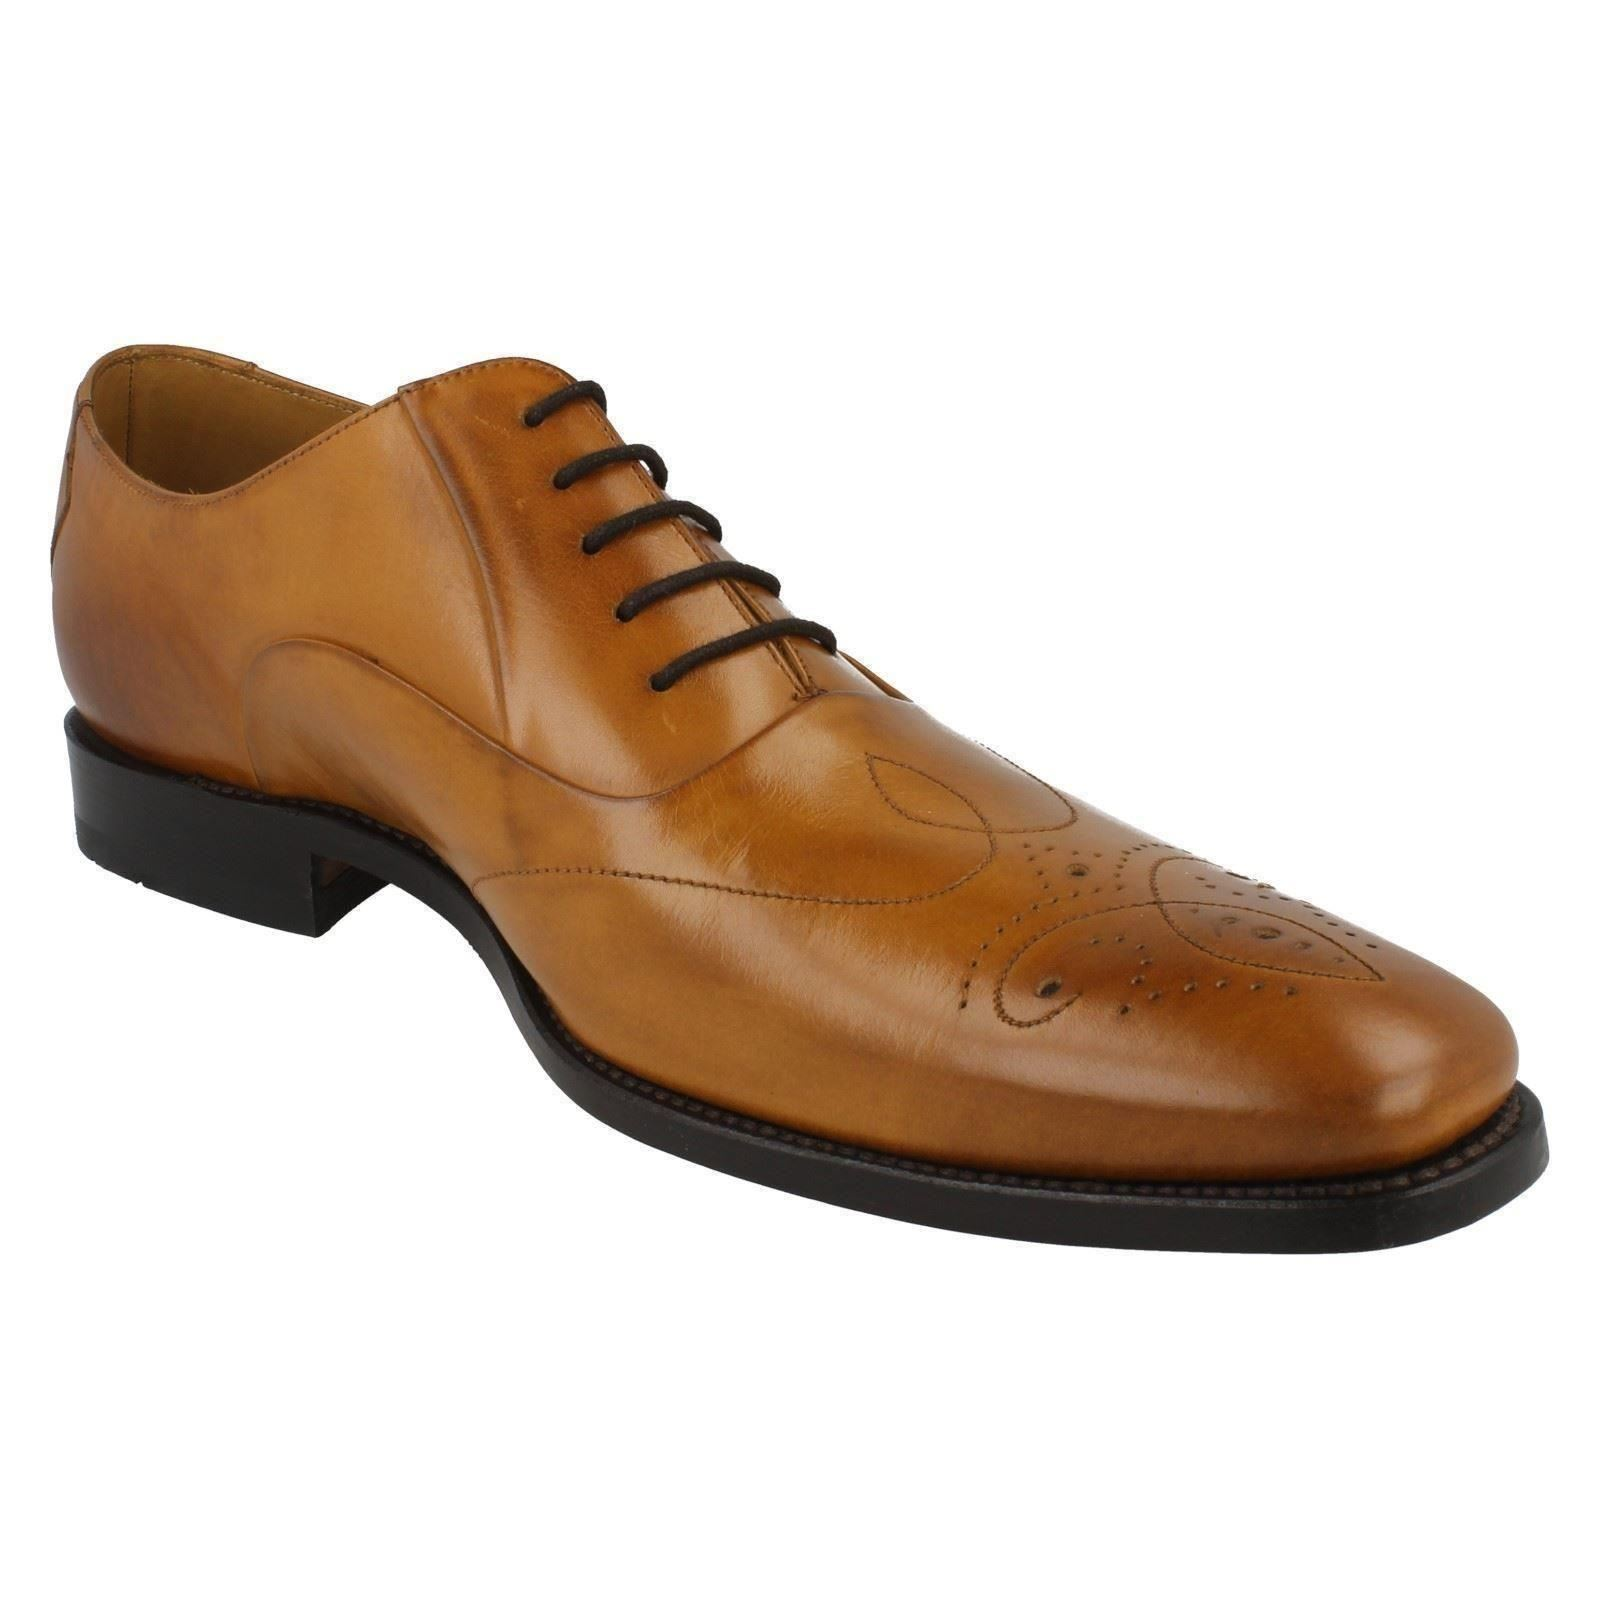 Chaussures Homme F Loake formelle Raccord F Homme Style-gunny 825361